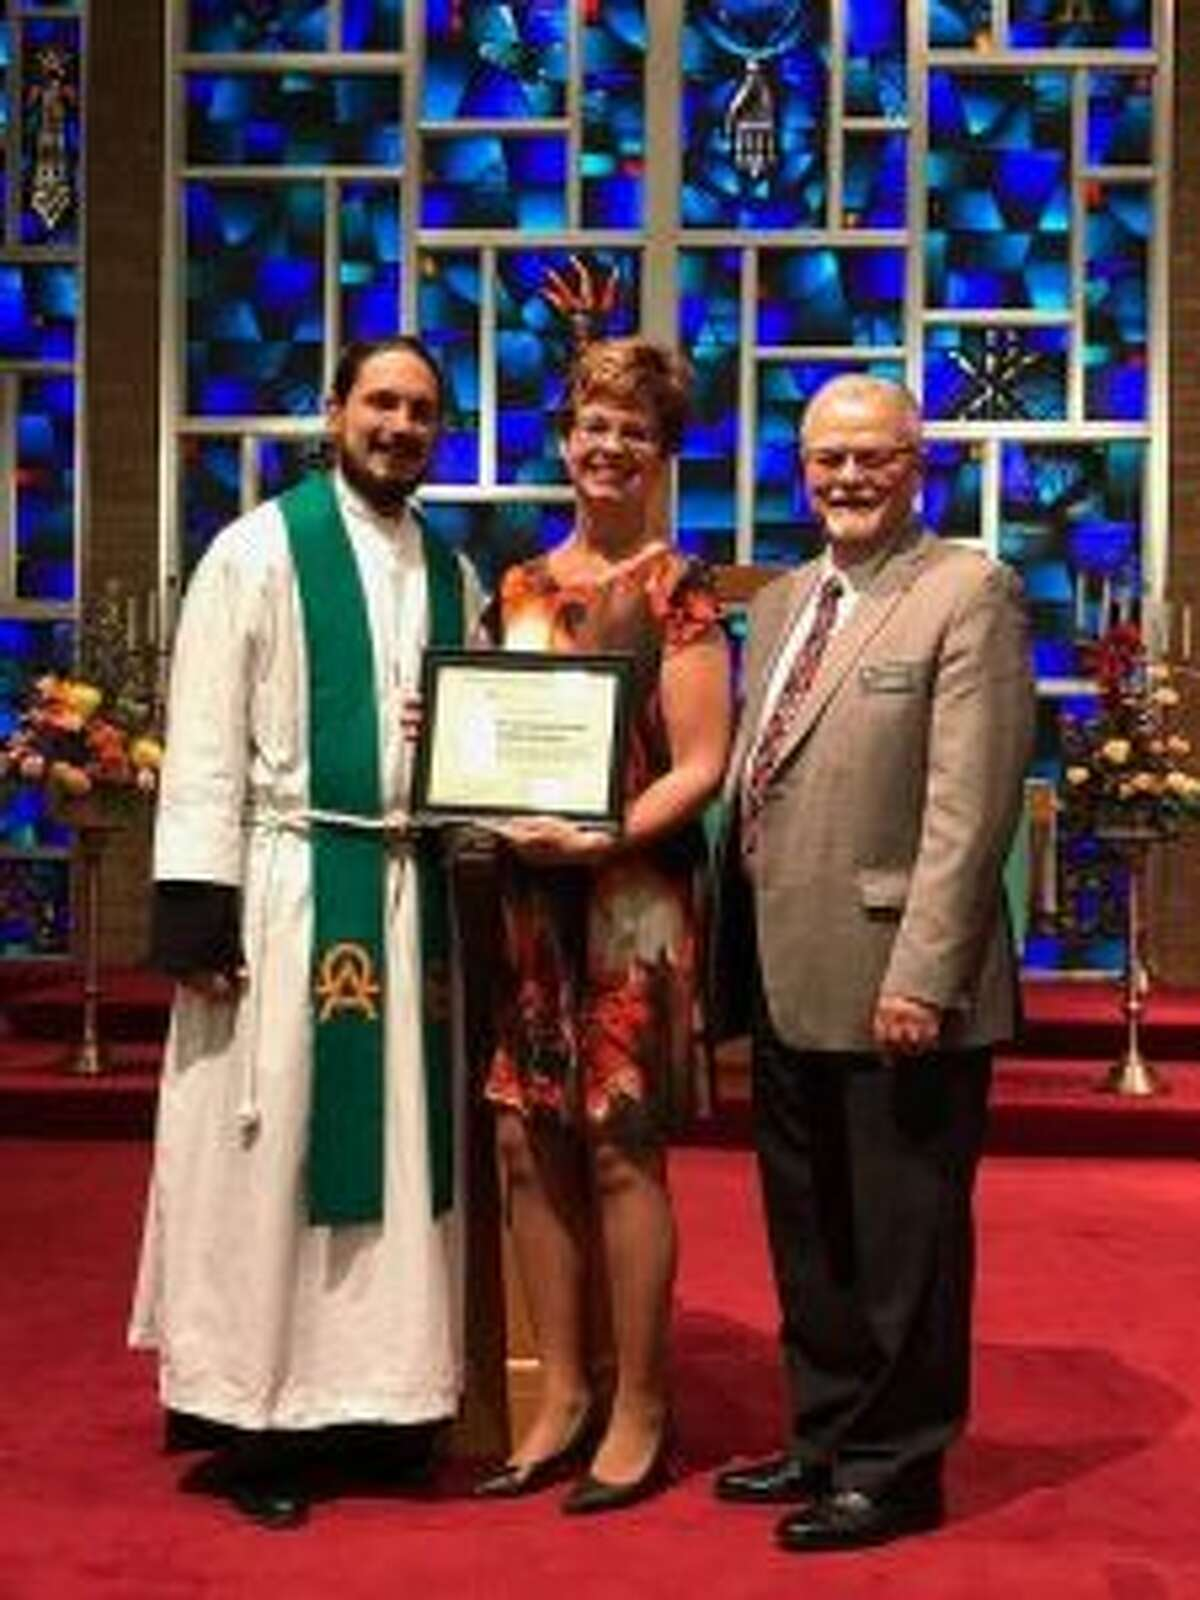 St. Peter's Lutheran School recently was awarded national accreditation. (Pictured) Zonna Heck, interim principal and kindergarten teacher, holds the accreditation award alongside Pastor Johnathon Williams (left) and Assistant Superintendent of Michigan Lutheran Schools Chuck Winterstein (right). (Courtesy photo)